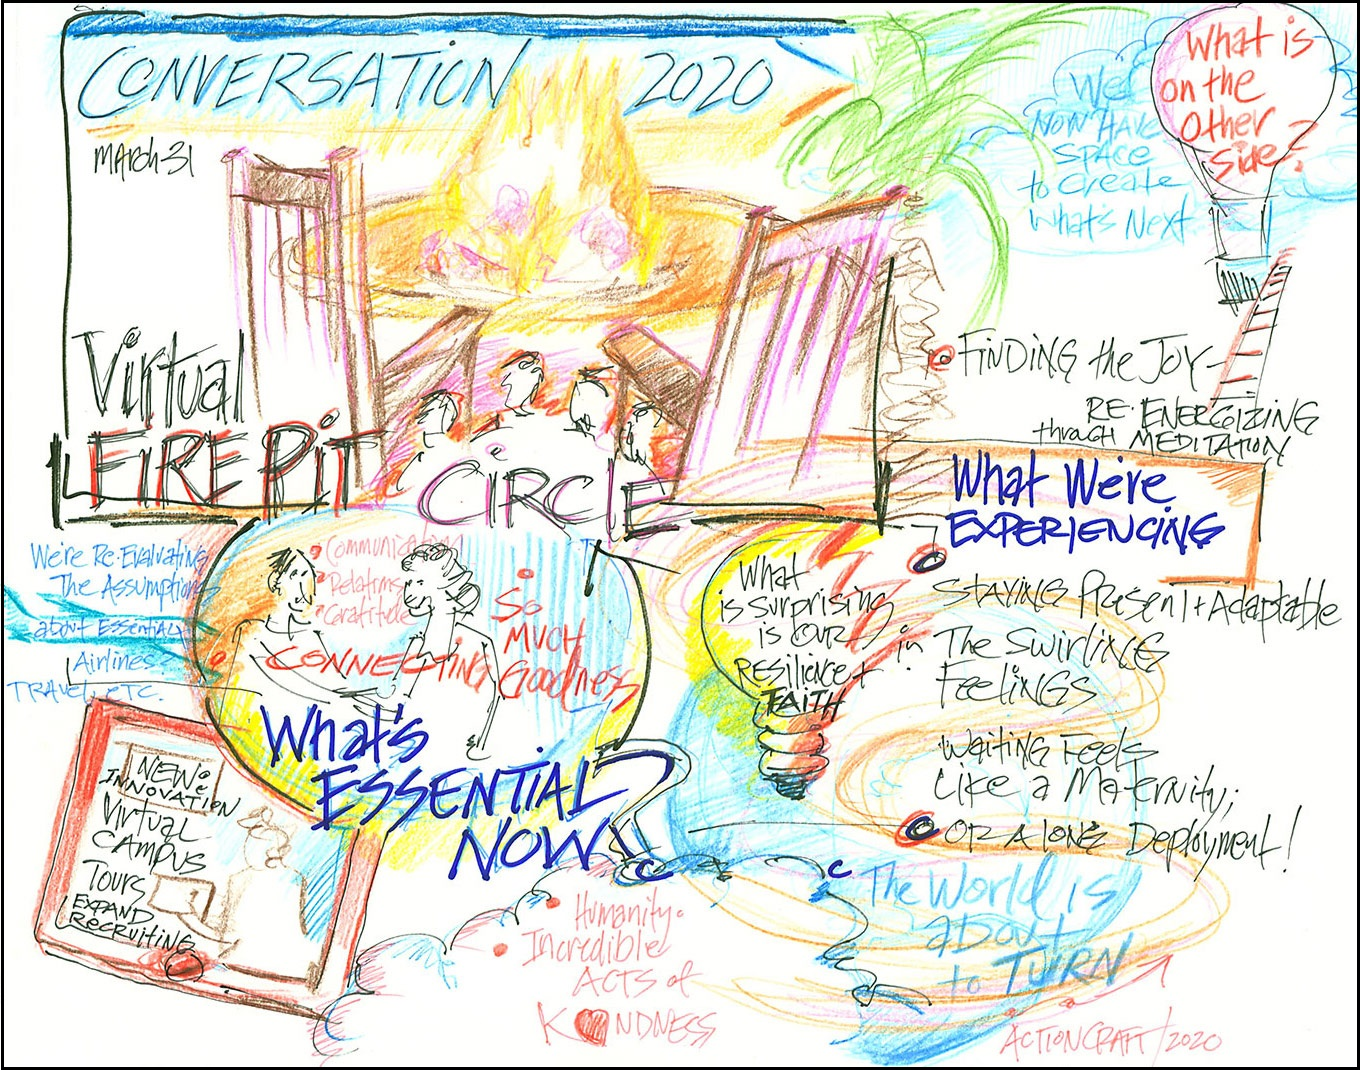 Conversation 2020 graphic - Finding the Essential during this Crisis.